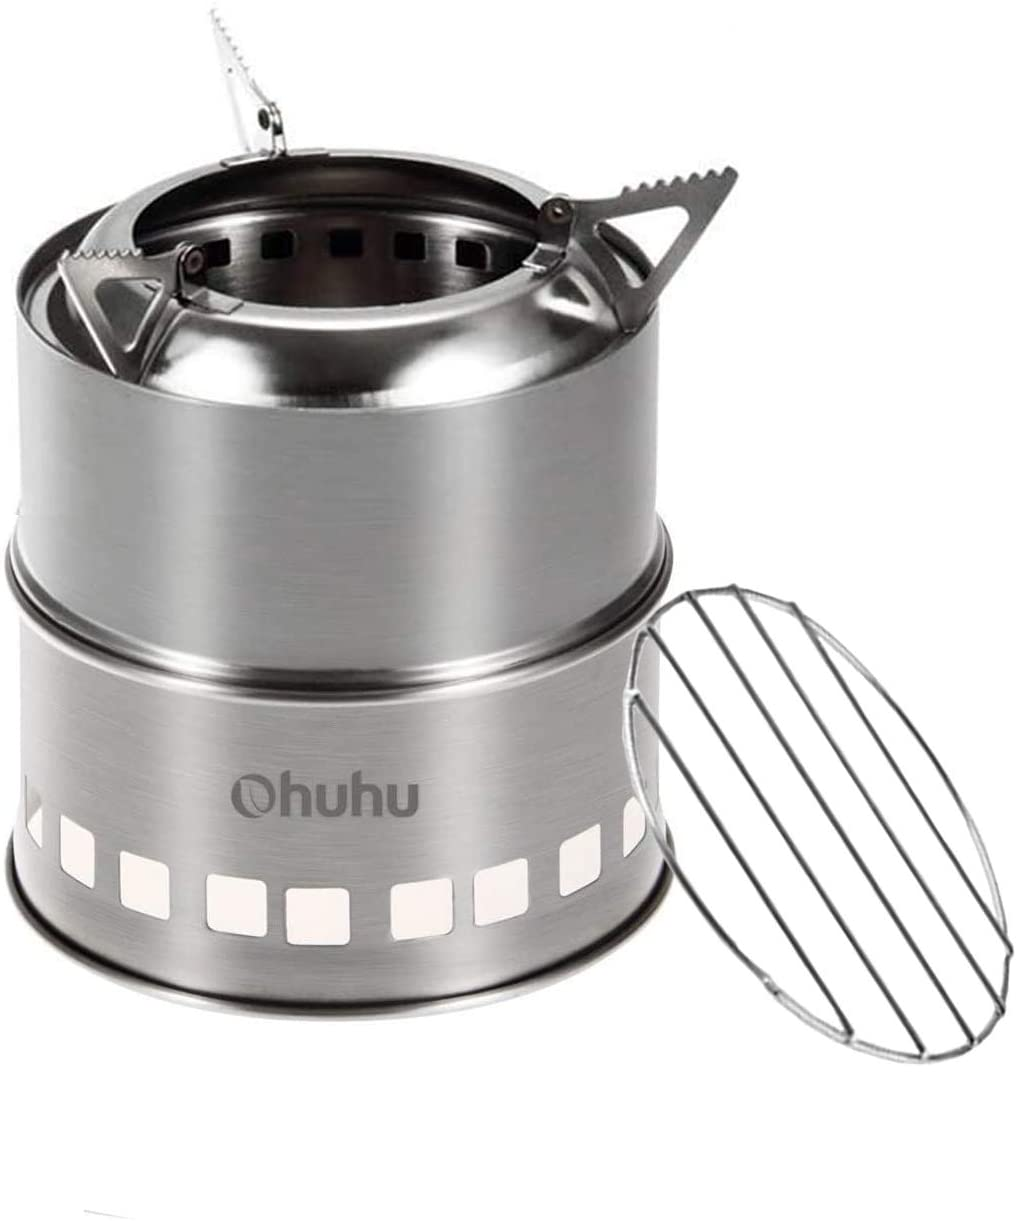 Review of Ohuhu Stainless Steel Camping Stove